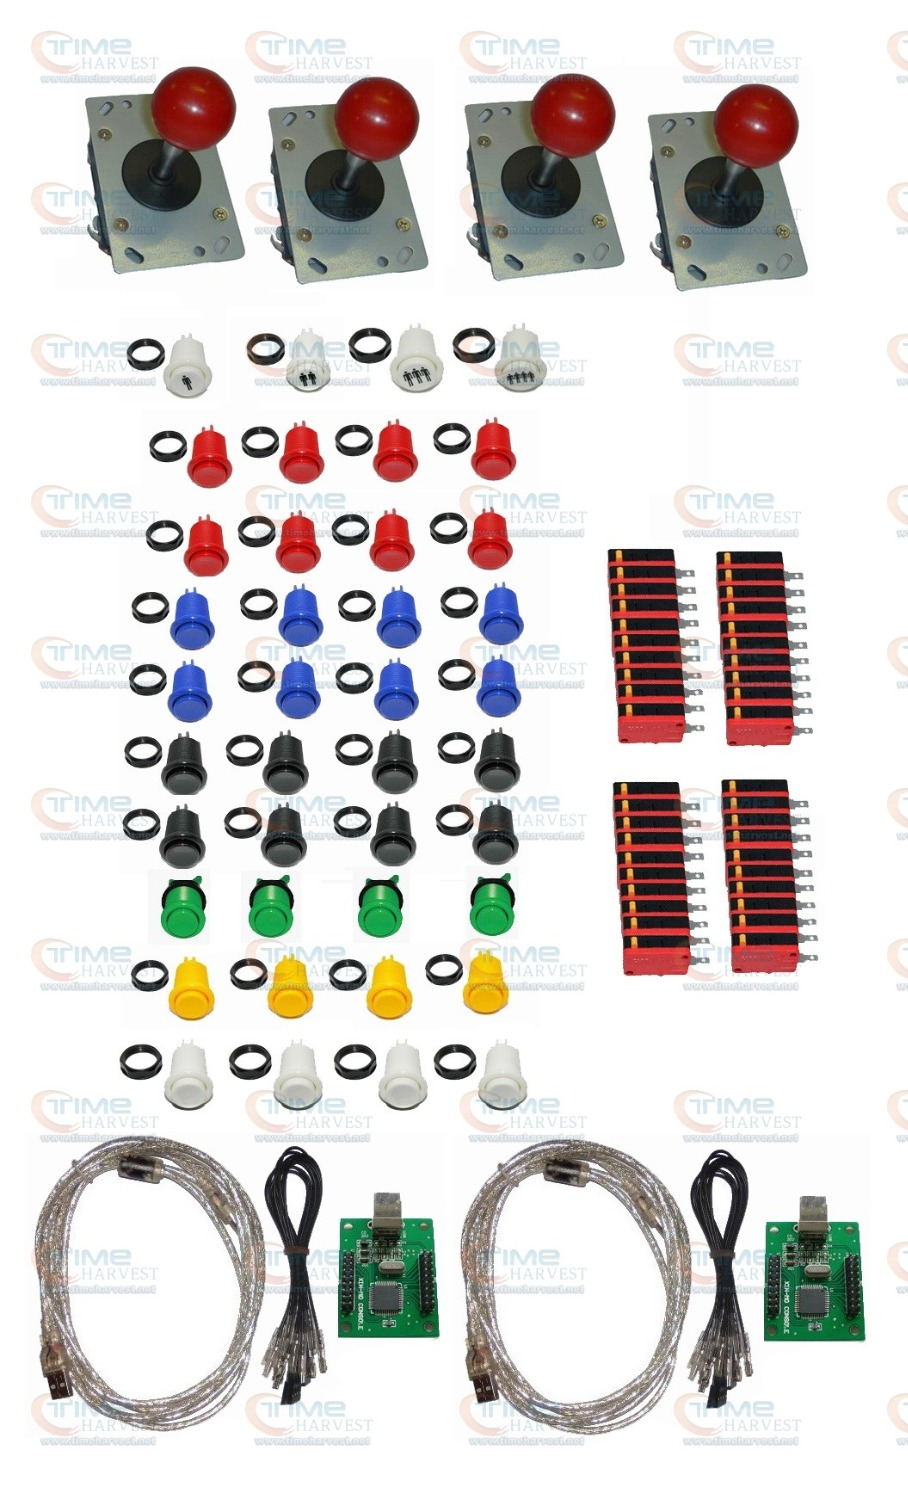 4 player USB Arcade parts Bundles Kit with 2x 2 player USB adapter Joystick American style button Microswitch 1P 2P 3P 4P button arcade parts bundles kit with 60 in 1 board power supply joystick push button microswitch harness glass clips coin door camlock